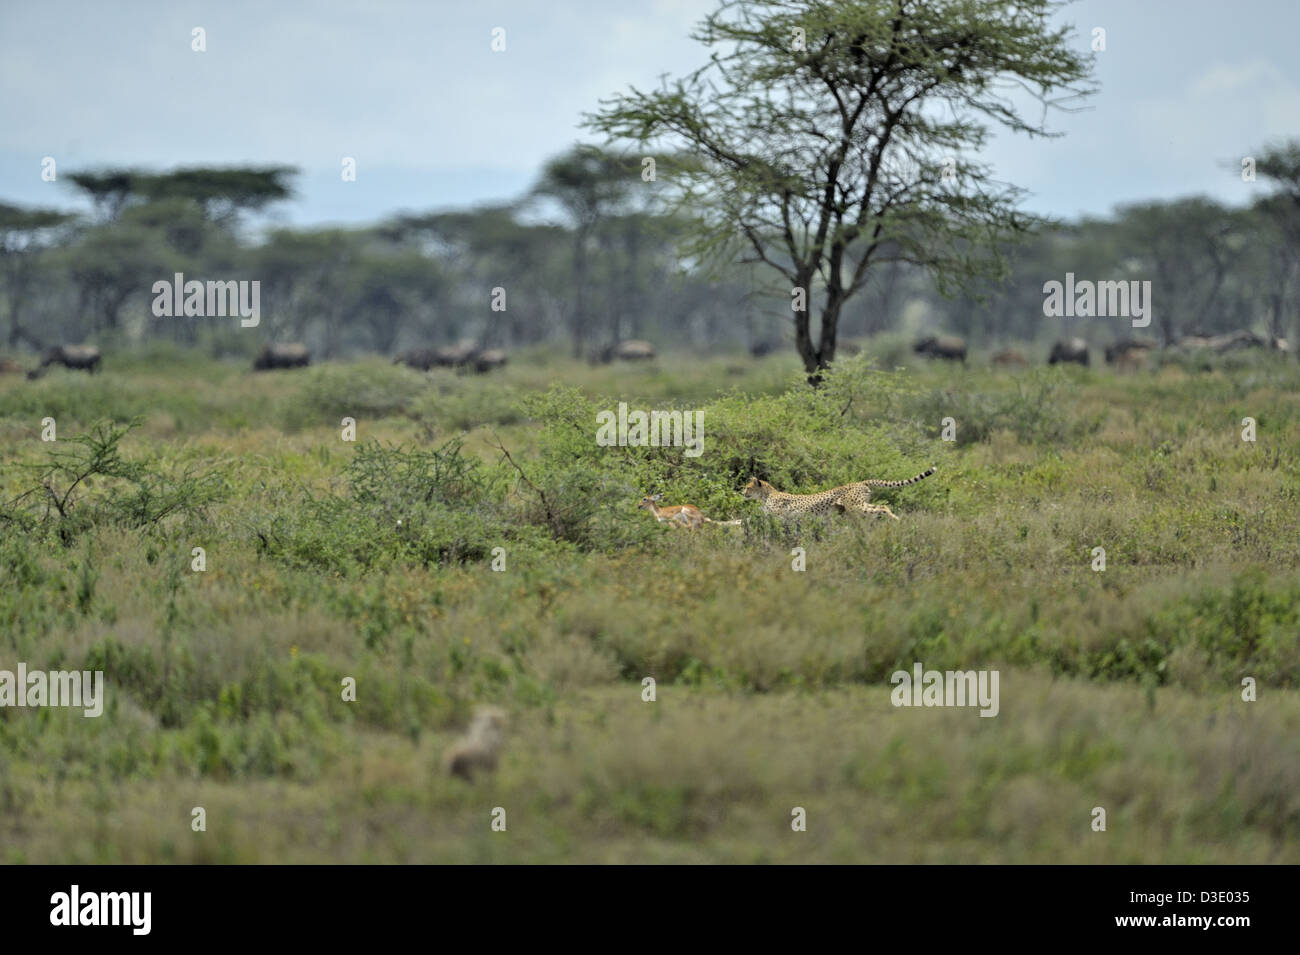 Charging Cheetah in the grasslands of Ndutu in Ngorongoro conservation area in north Tanzania, Africa - Stock Image